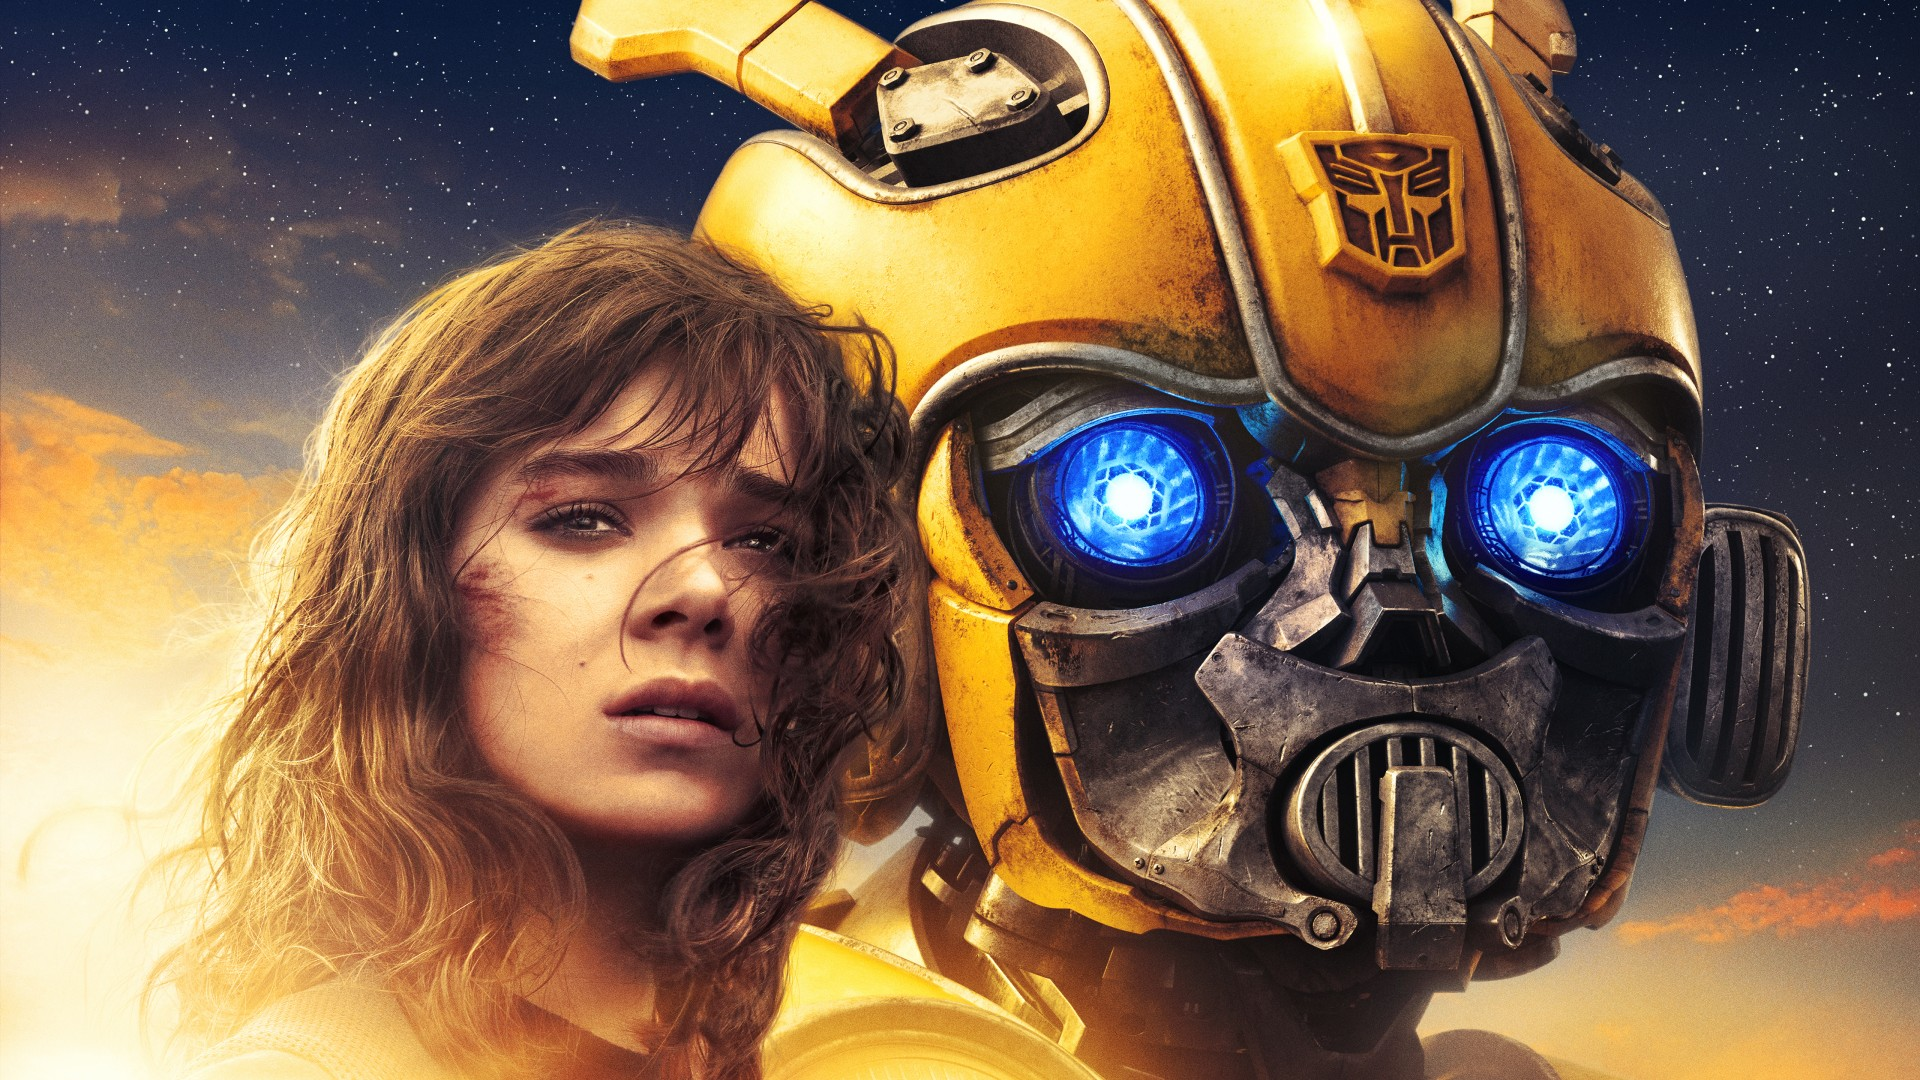 Iphone 8 Plus X Ray Wallpaper Bumblebee Movie 2018 5k Wallpapers Hd Wallpapers Id 26574